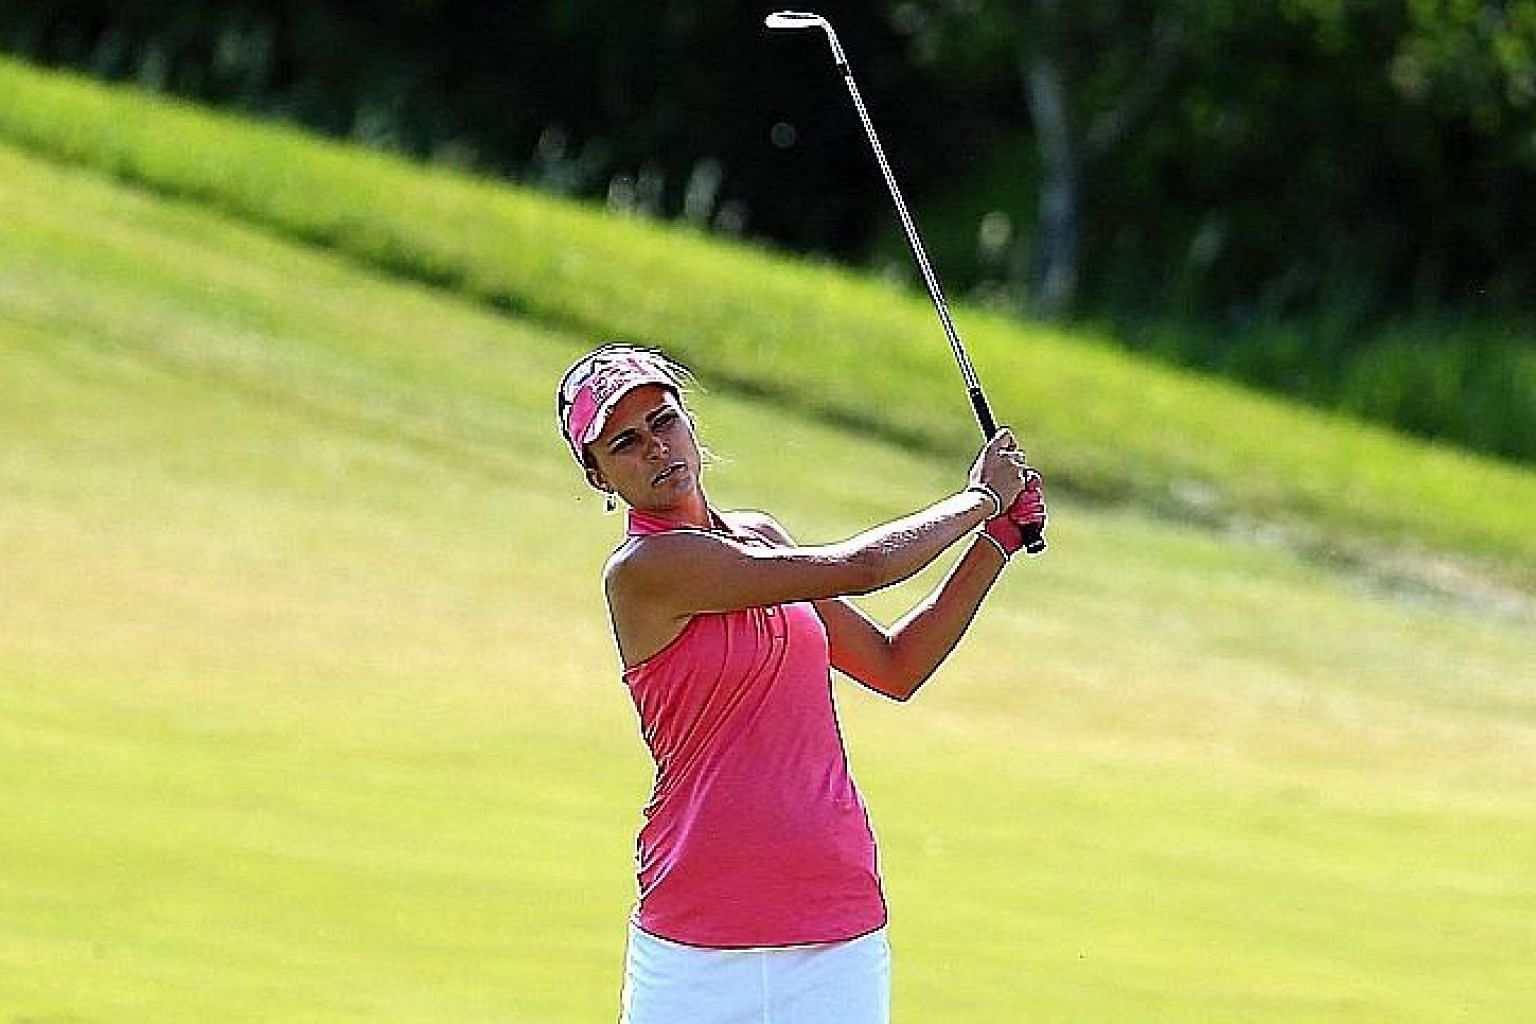 Lexi Thompson of the United States during the third round of the Manulife LPGA Classic at Whistle Bear Golf Club. She said consistency was the key to her performance as her five-under 67 gave her a one-stroke lead.